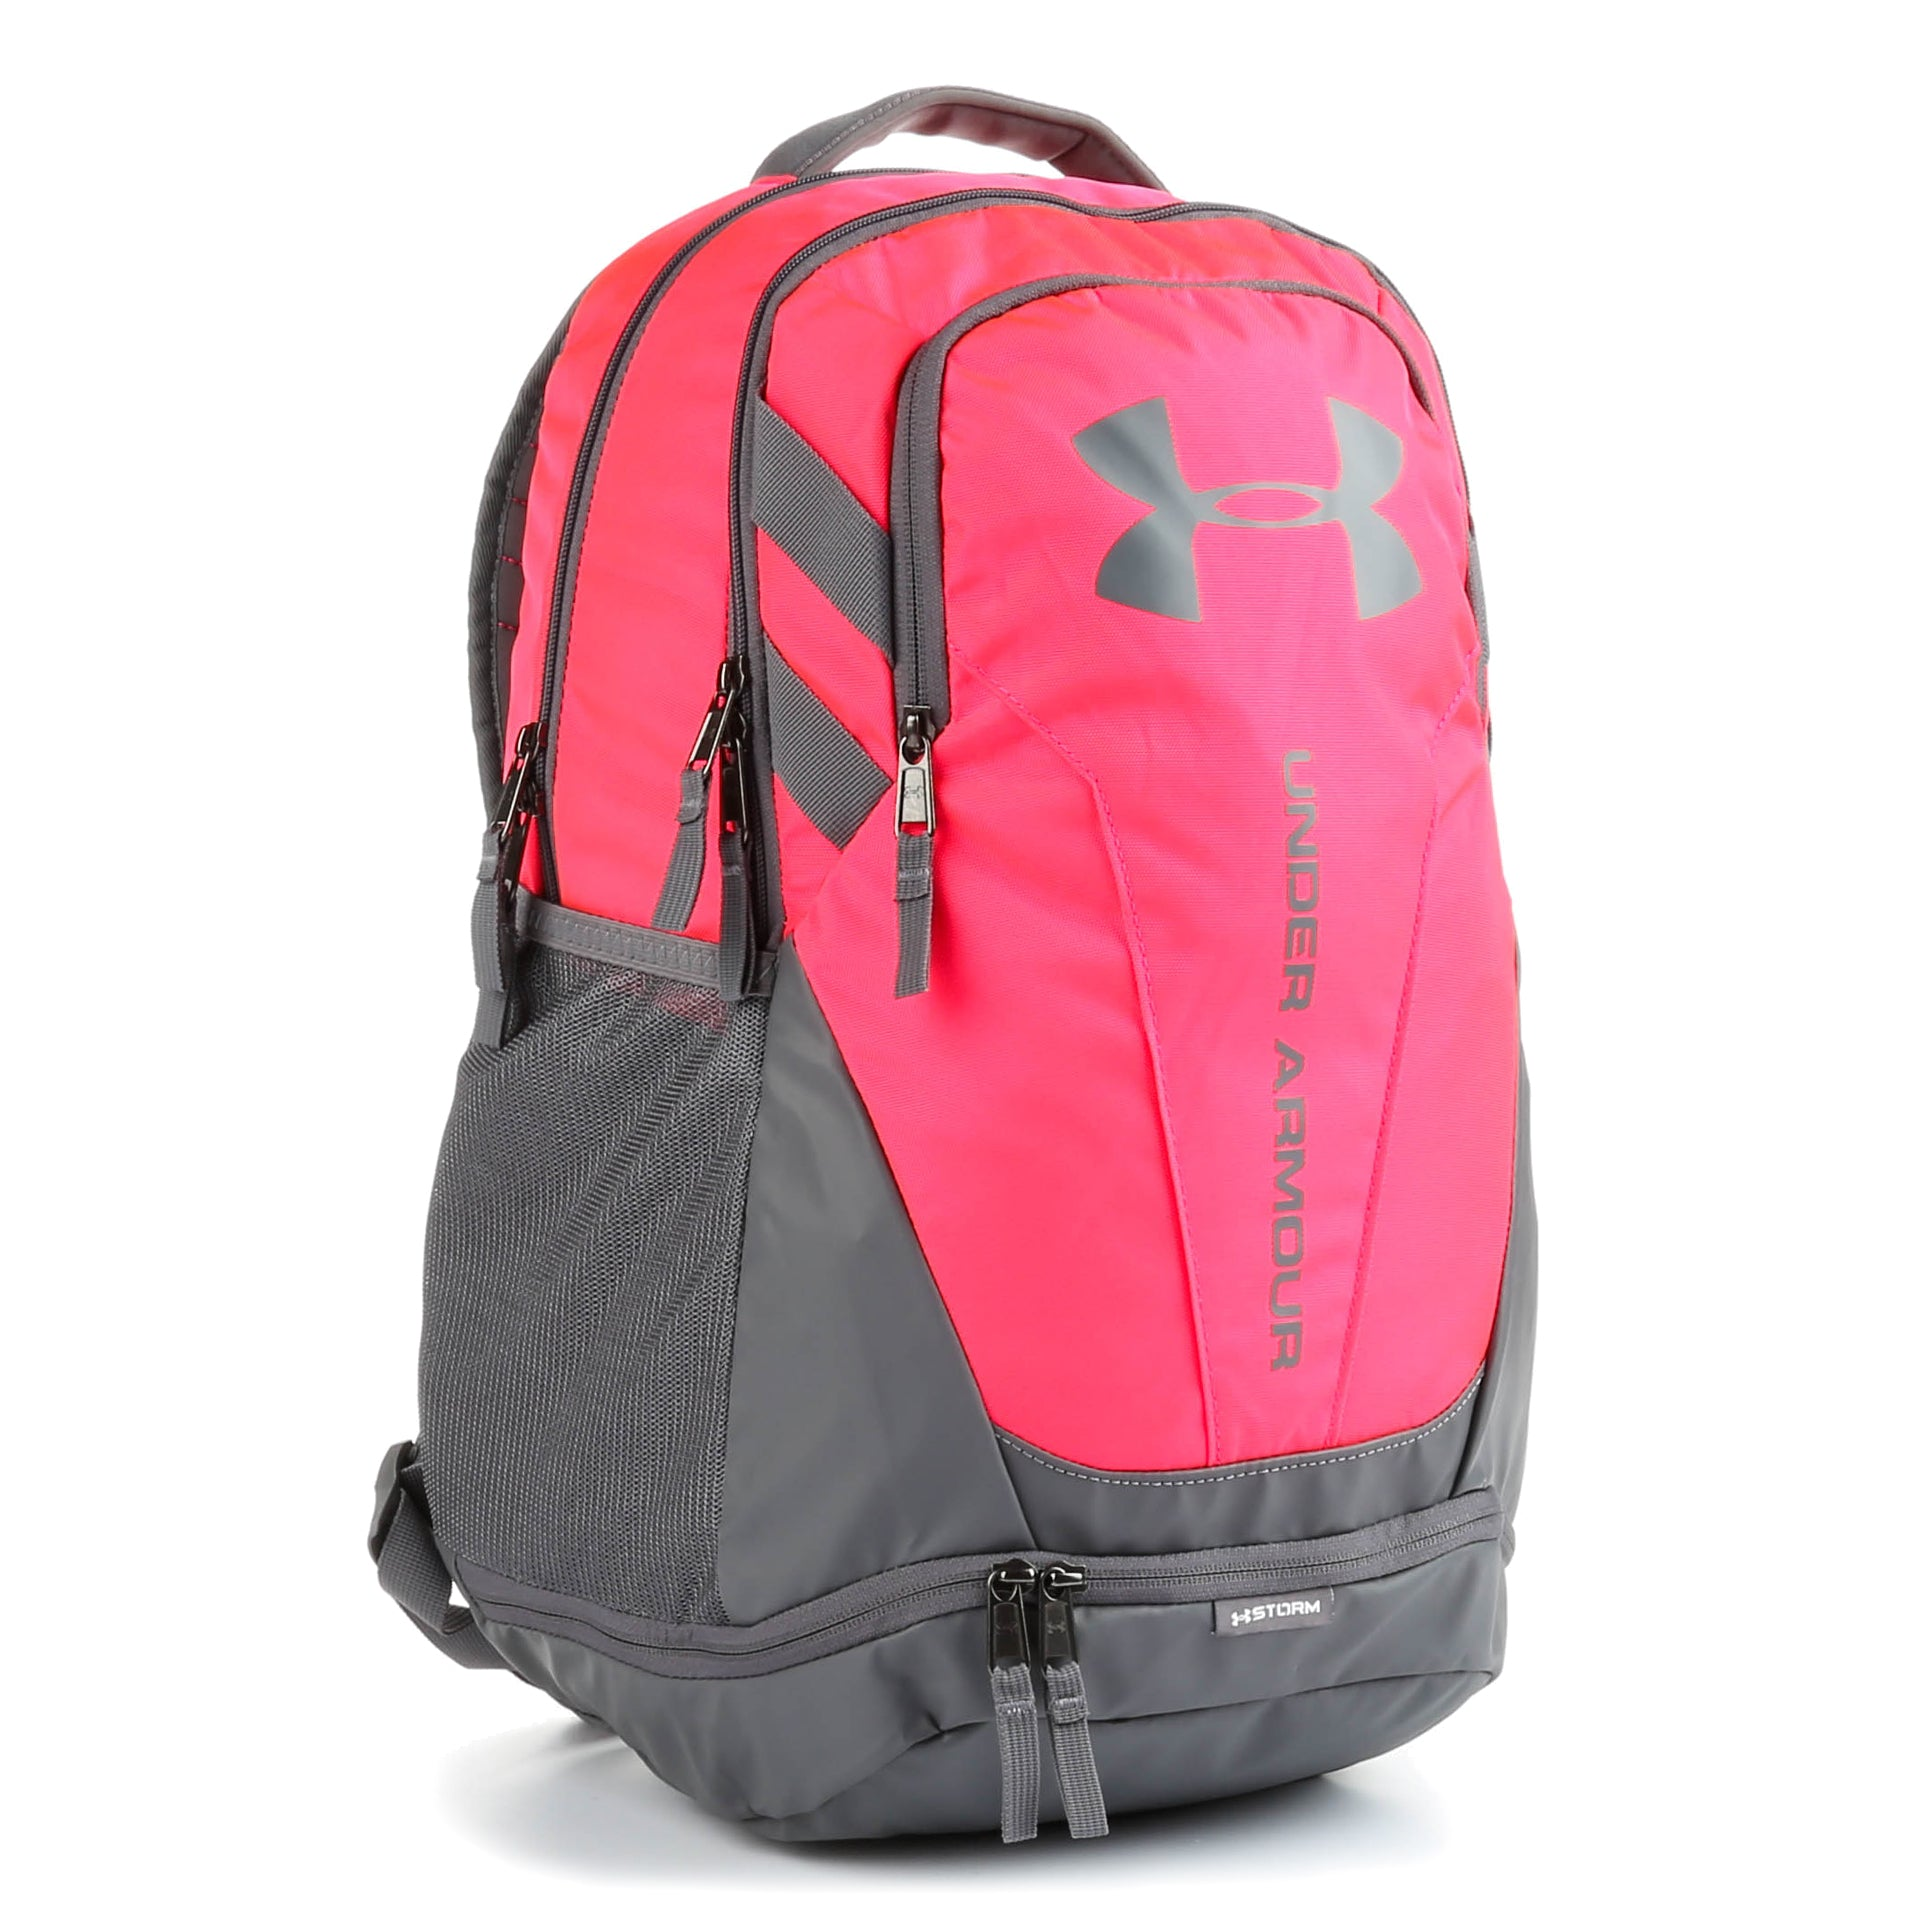 free shipping 433d5 f450b Under Armour Hustle 3.0 Backpack - Penta Pink   Graphite